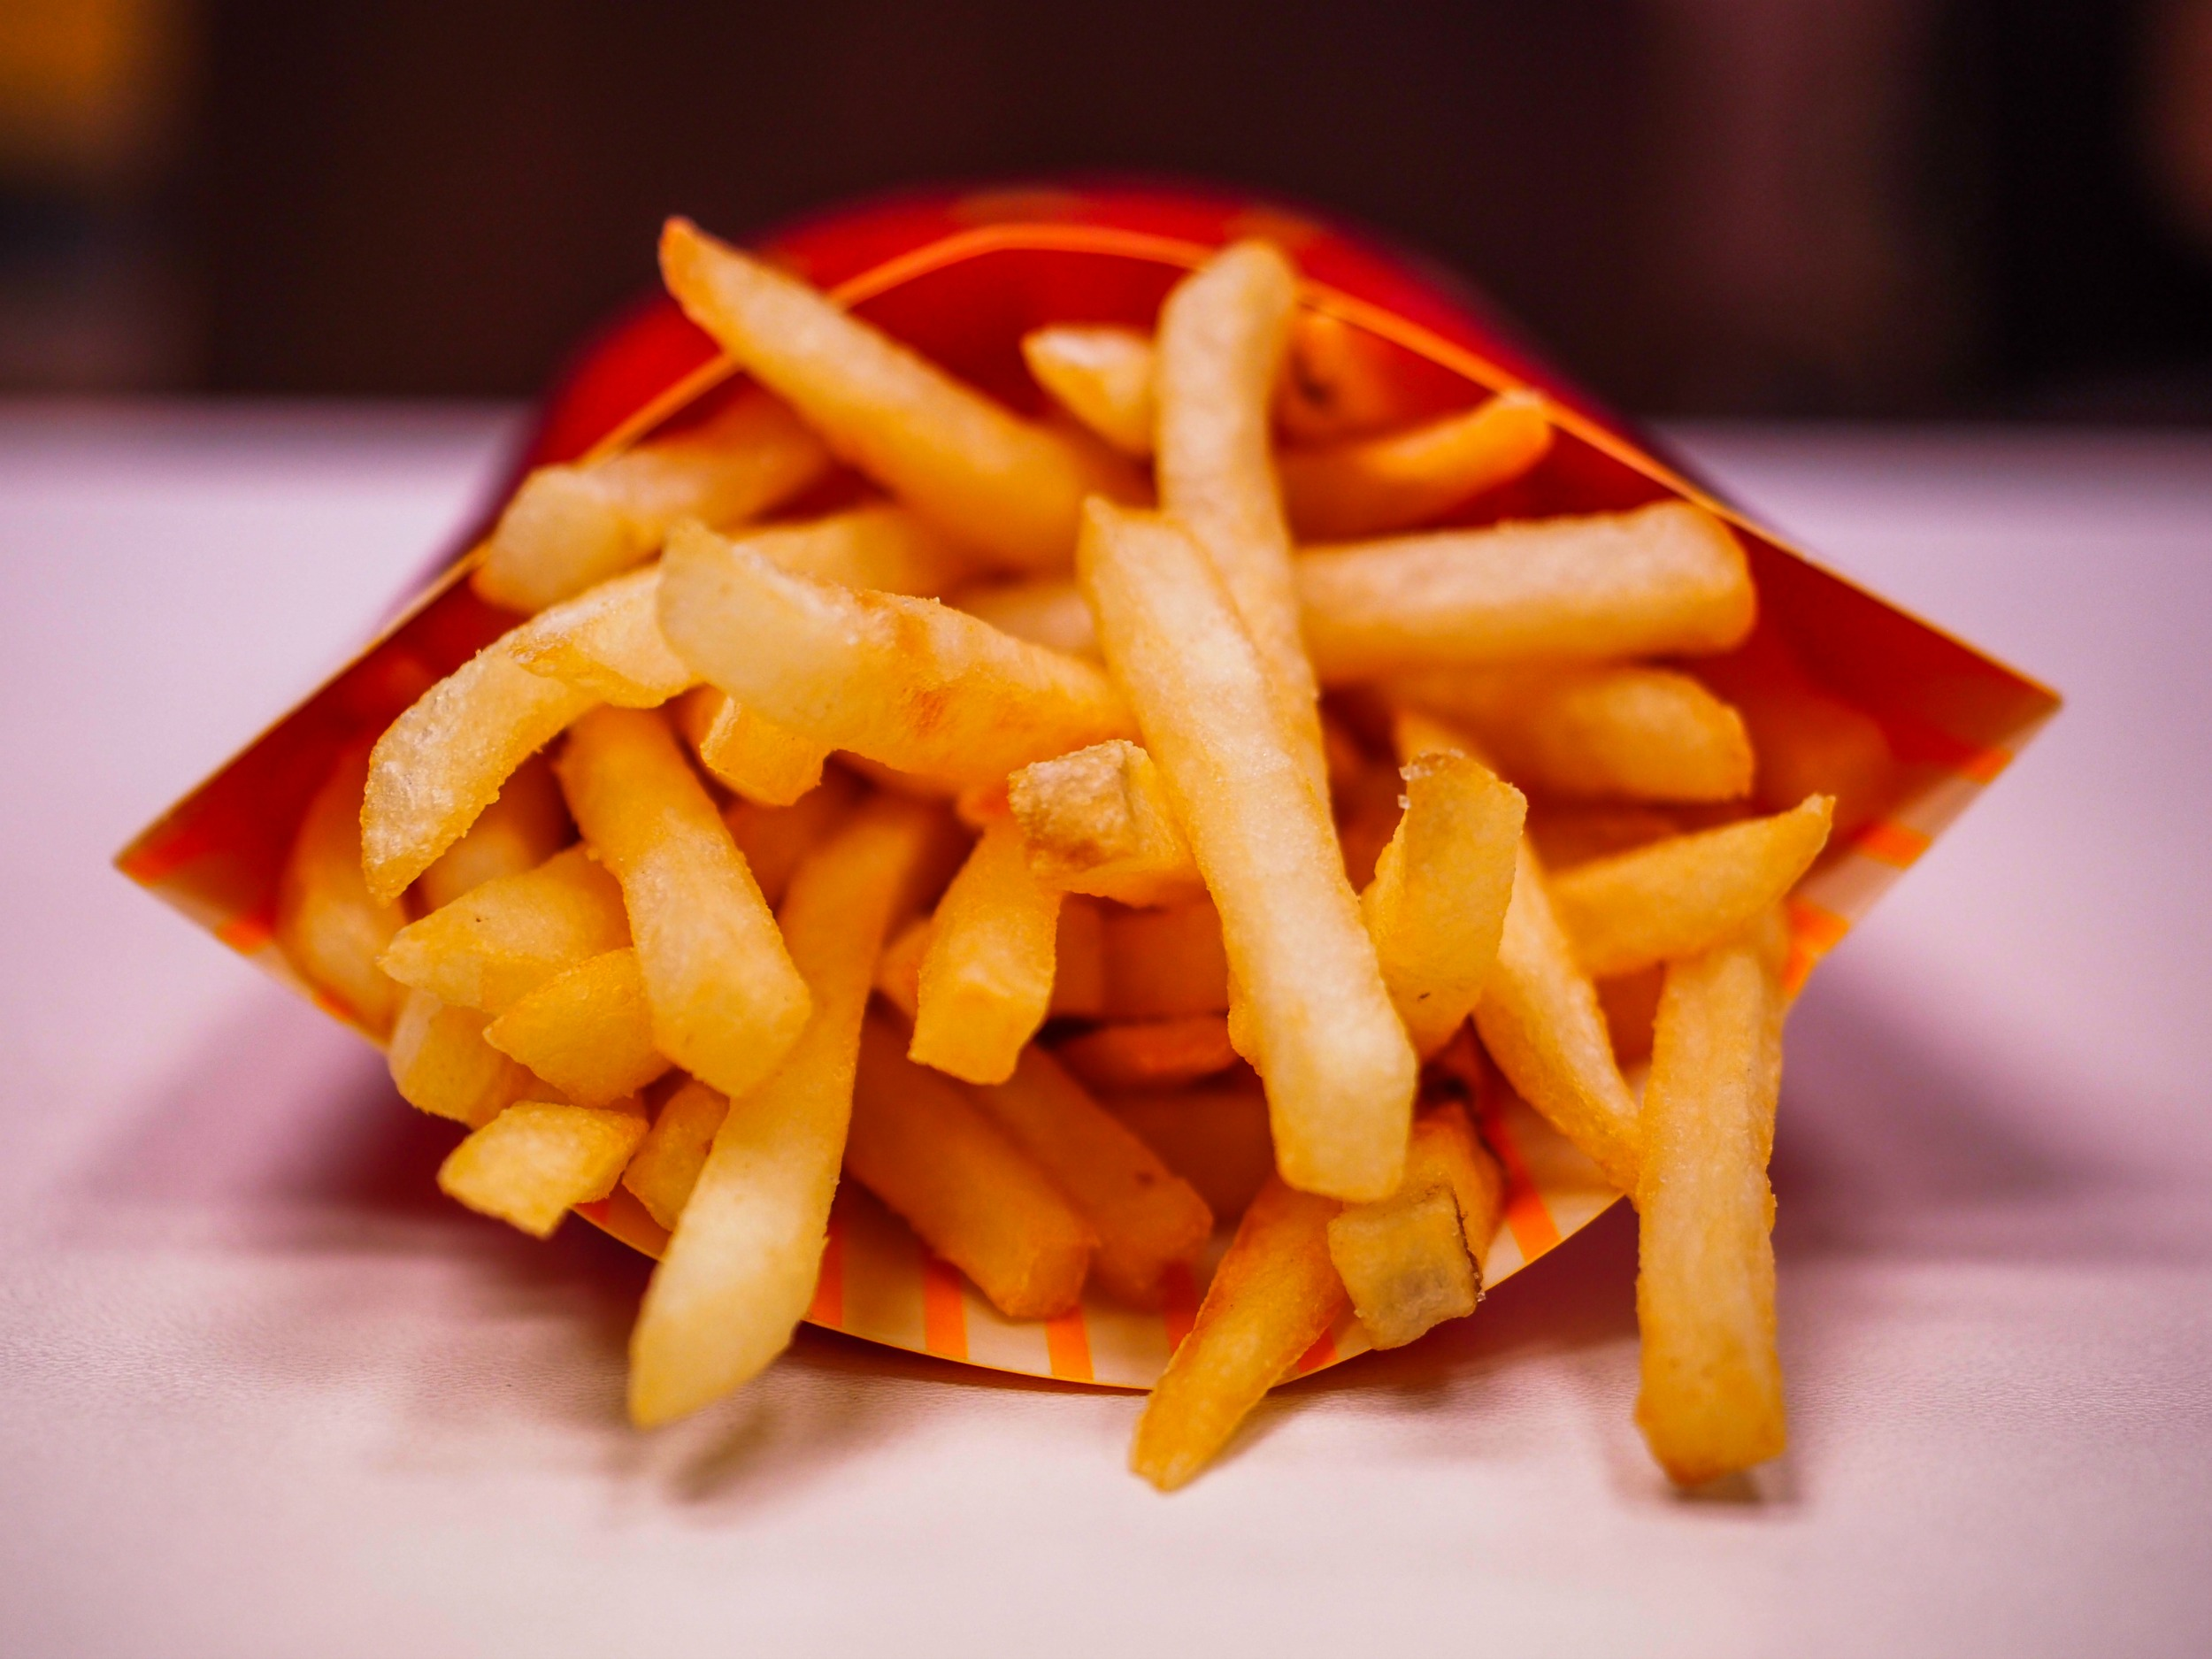 Whats really in mcdonalds french fries solutioingenieria Gallery